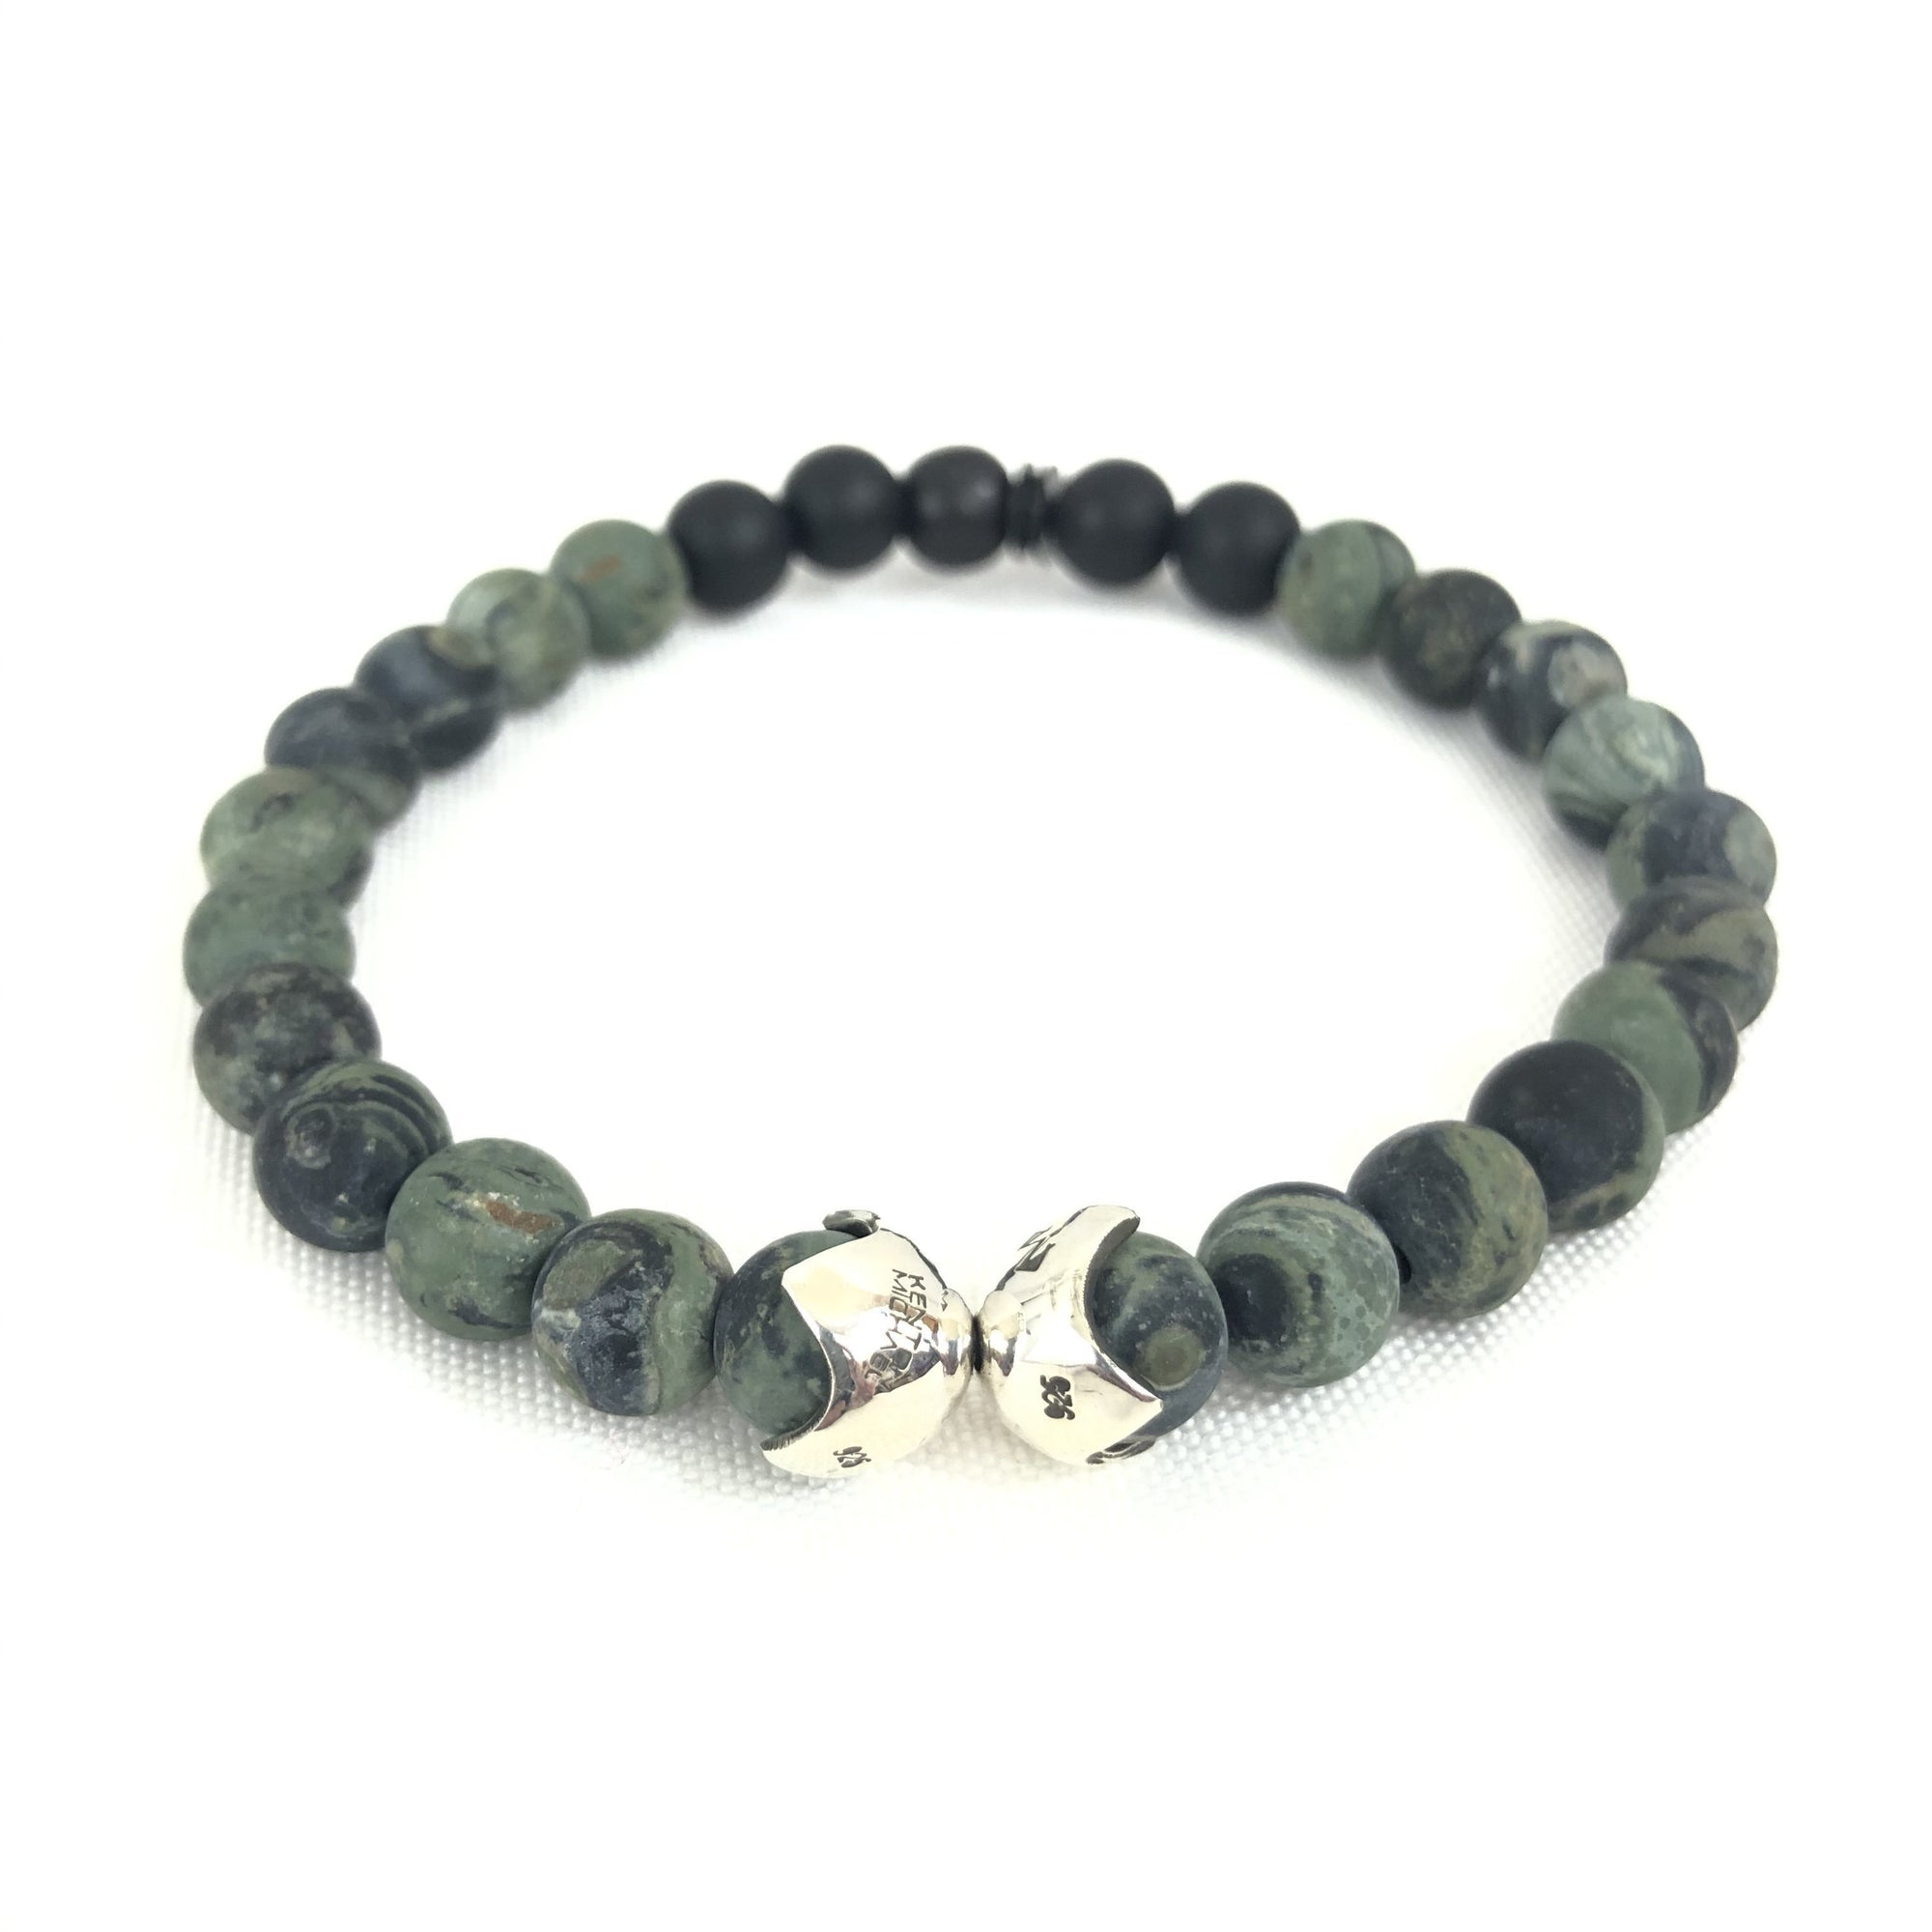 KENTON MICHAEL KAMBABA JASPER BEAD AND STERLING SHIELD BRACELET